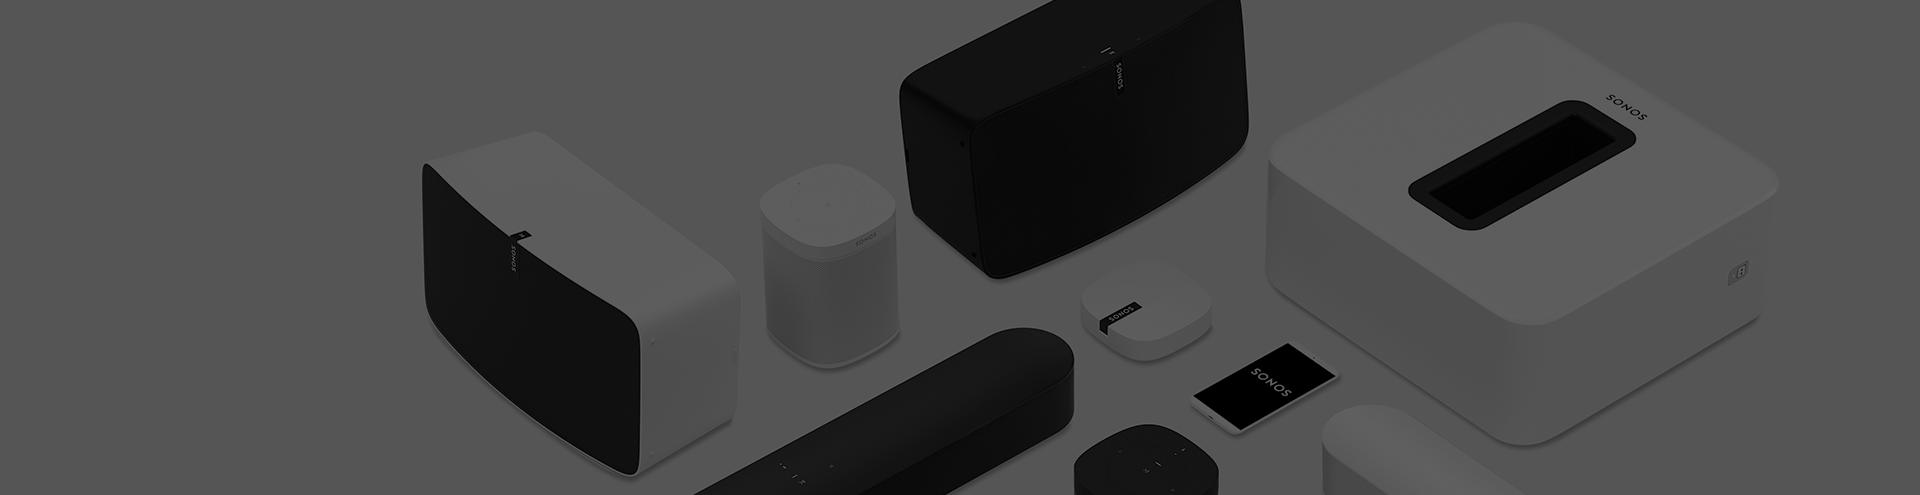 Sonos-Home-Audio-Banner-1